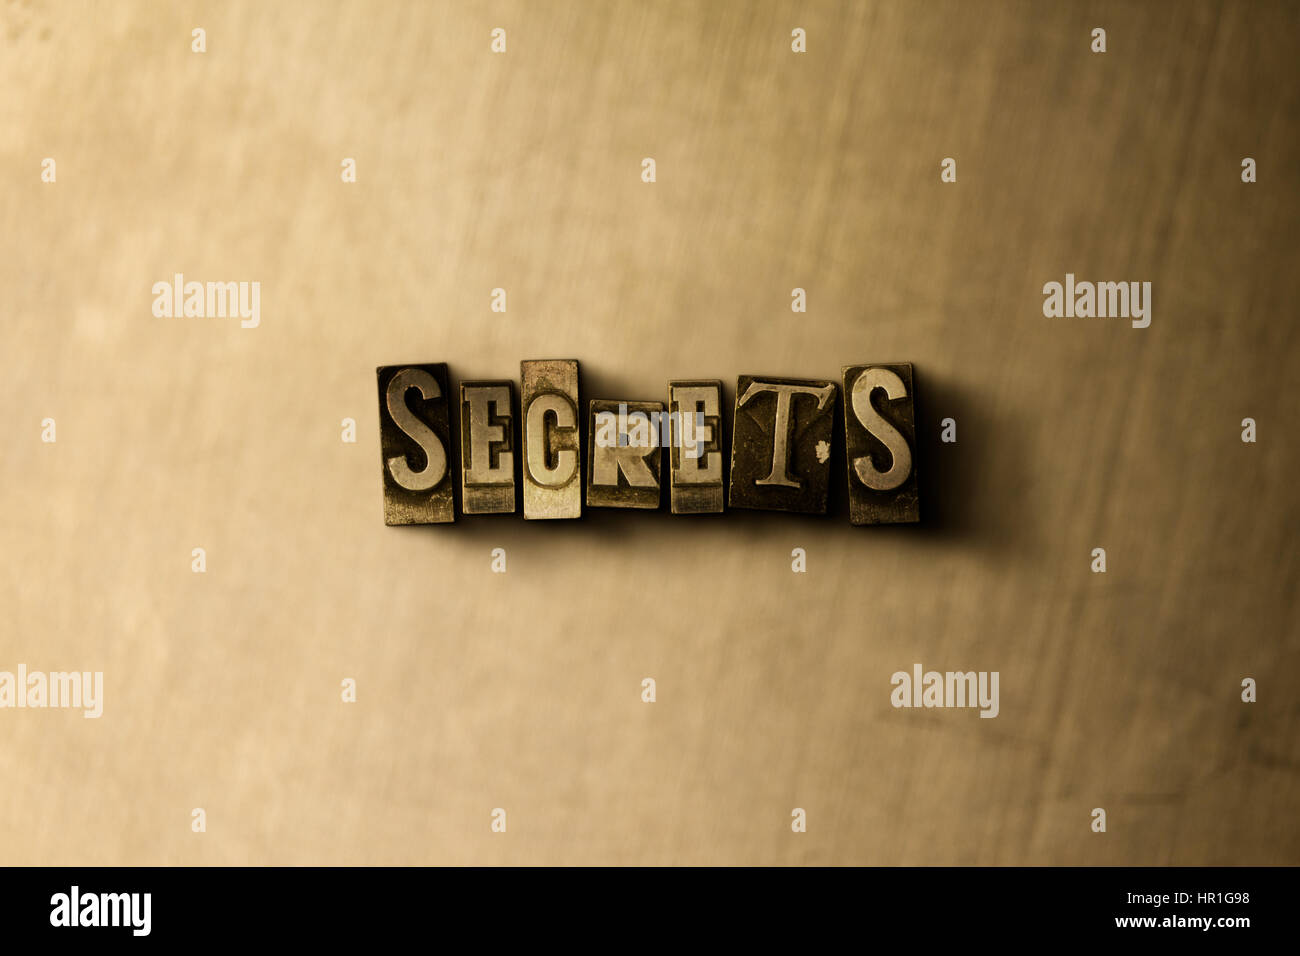 SECRETS - close-up of grungy vintage typeset word on metal backdrop. Royalty free stock - 3D rendered stock image. - Stock Image